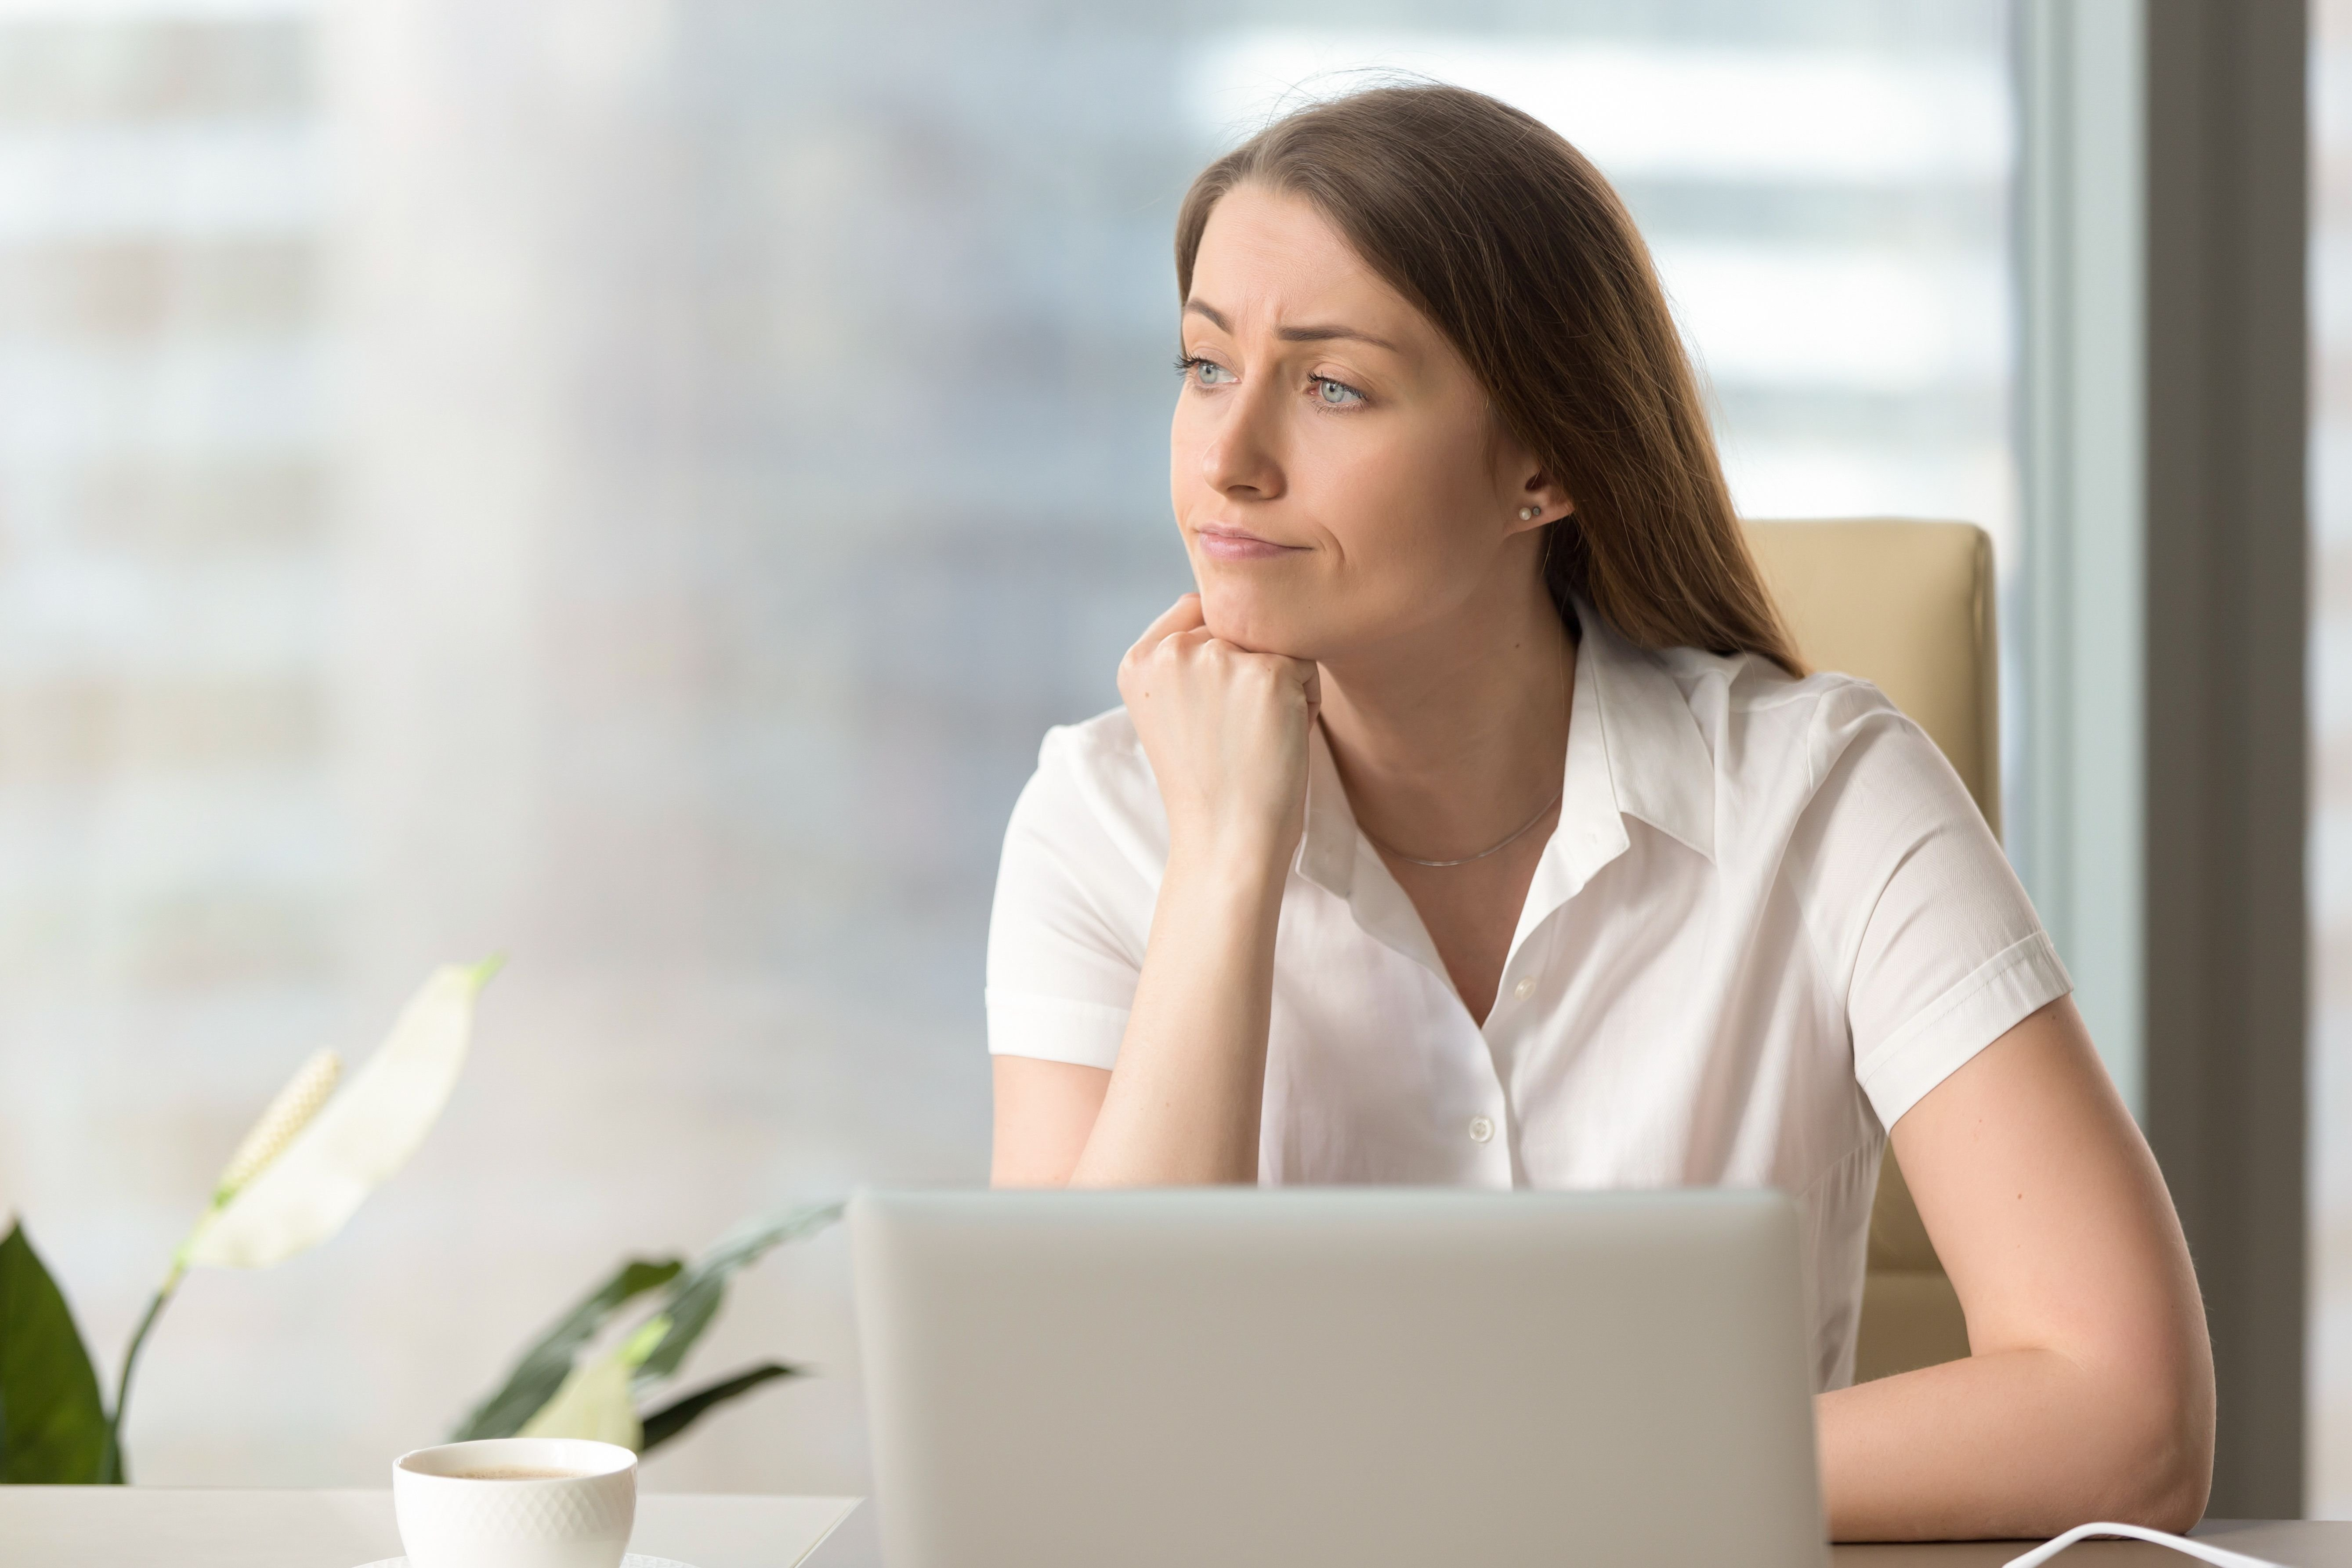 A woman looks disappointed while looking at a laptop.   Source: Shutterstock